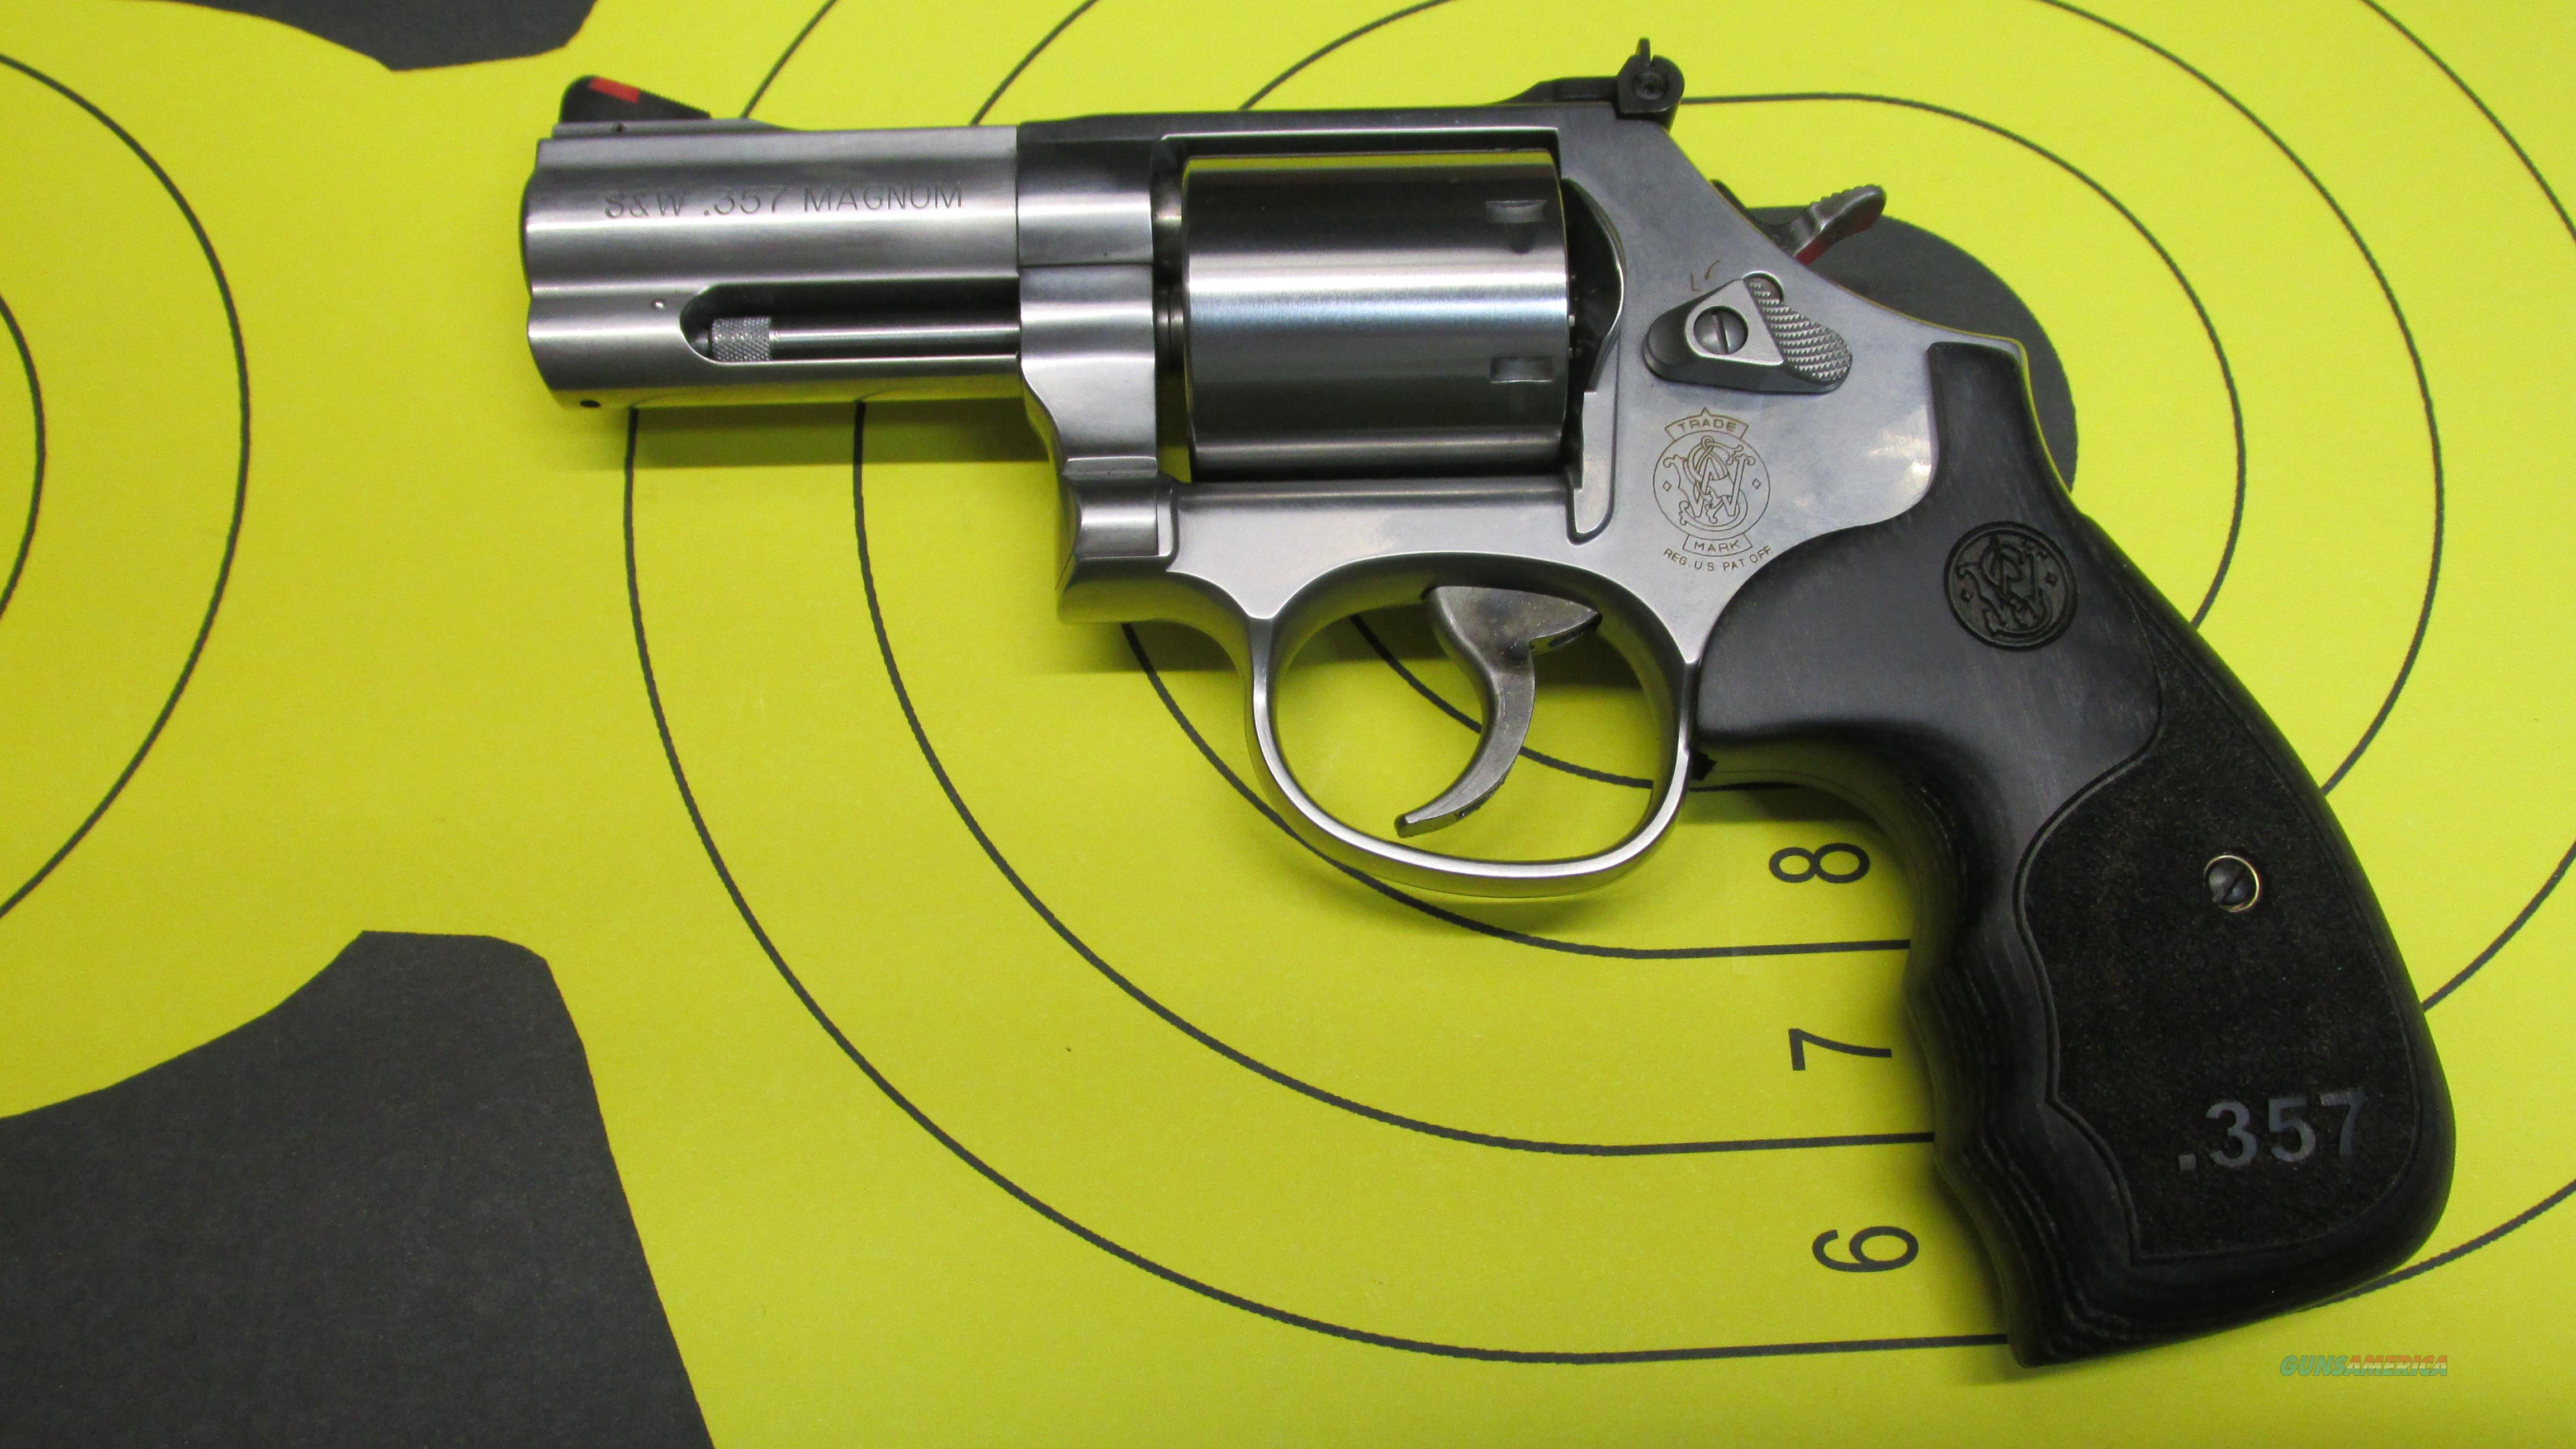 "SMITH & WESSON 686-6 PLUS DELUXE 7 SHOT REVOLVER, UNFLUTED CYLINDER WITH 3"" BARREL, CUSTOM WOOD GRIPS  Guns > Pistols > Smith & Wesson Revolvers > Med. Frame ( K/L )"